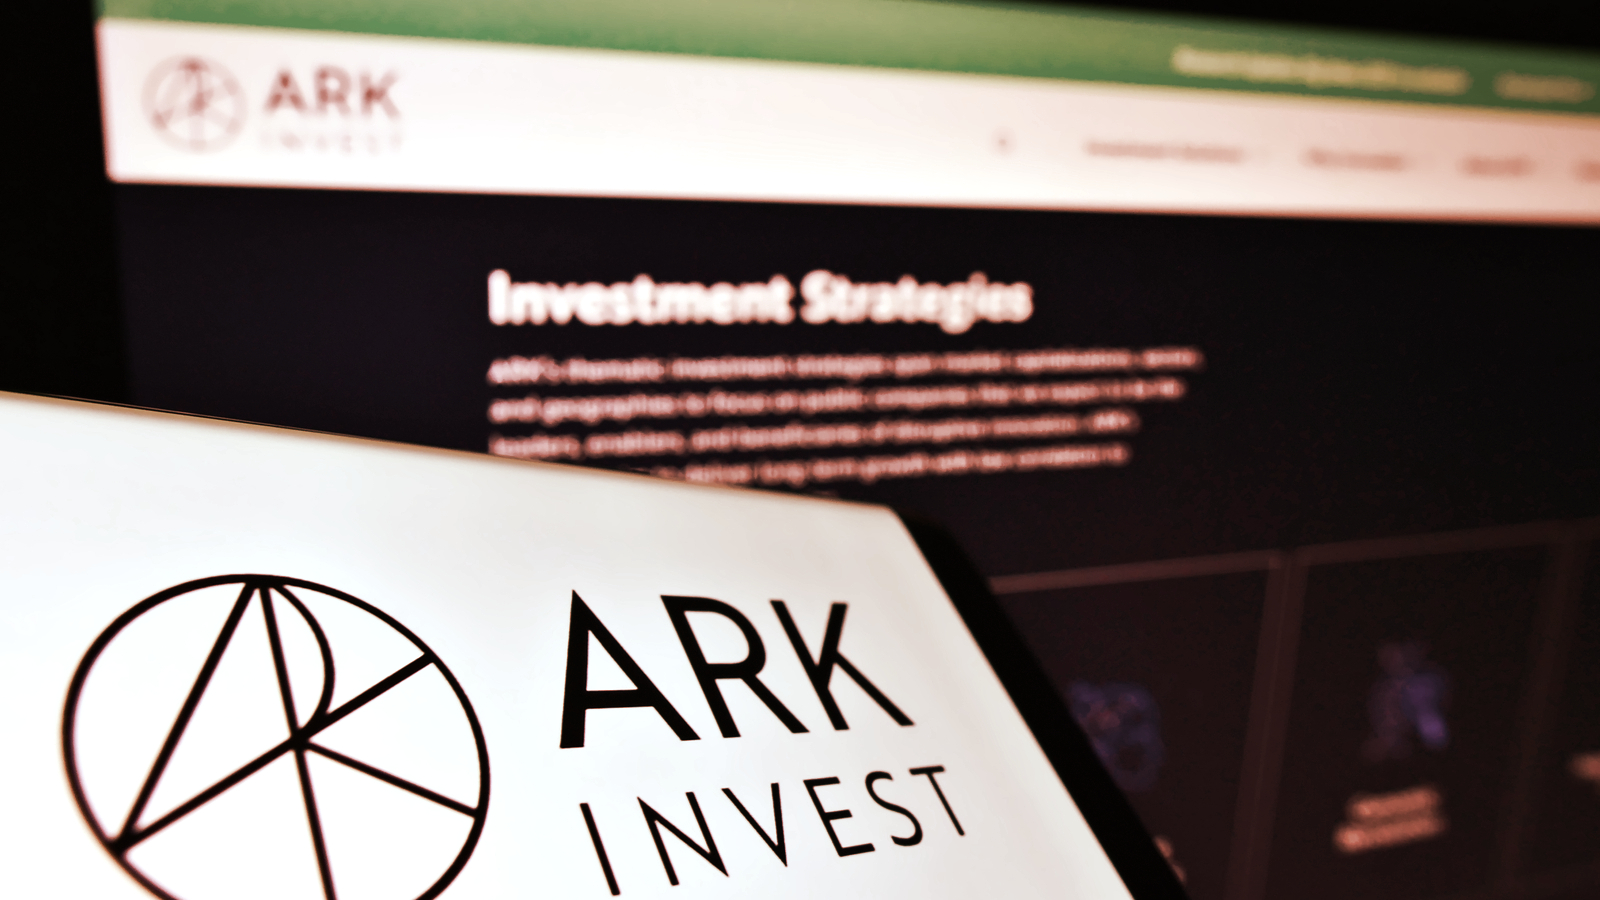 Michael Burry of 'Big Short' Makes $31 Million Bet Against Crypto-Friendly ARK Invest